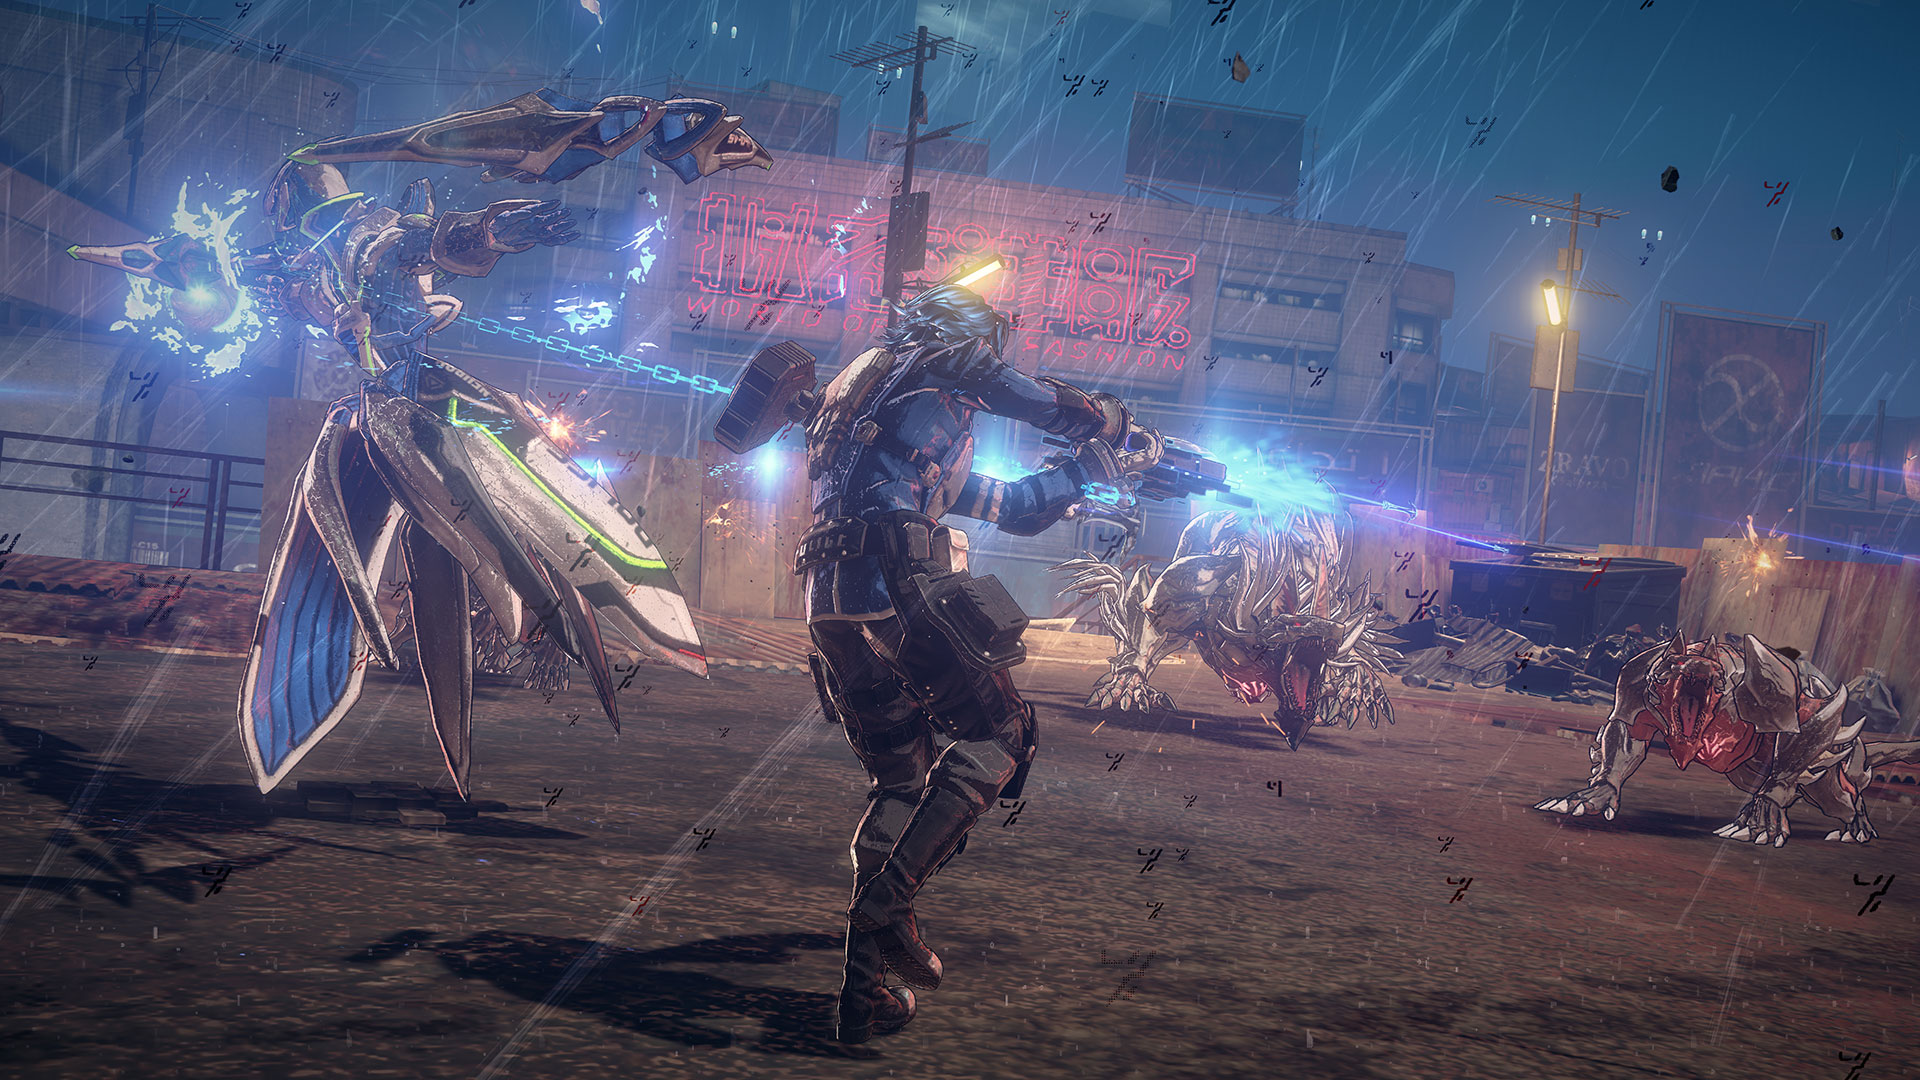 Have a look at Nintendo's Astral Chain presentation from Japan Expo 2019